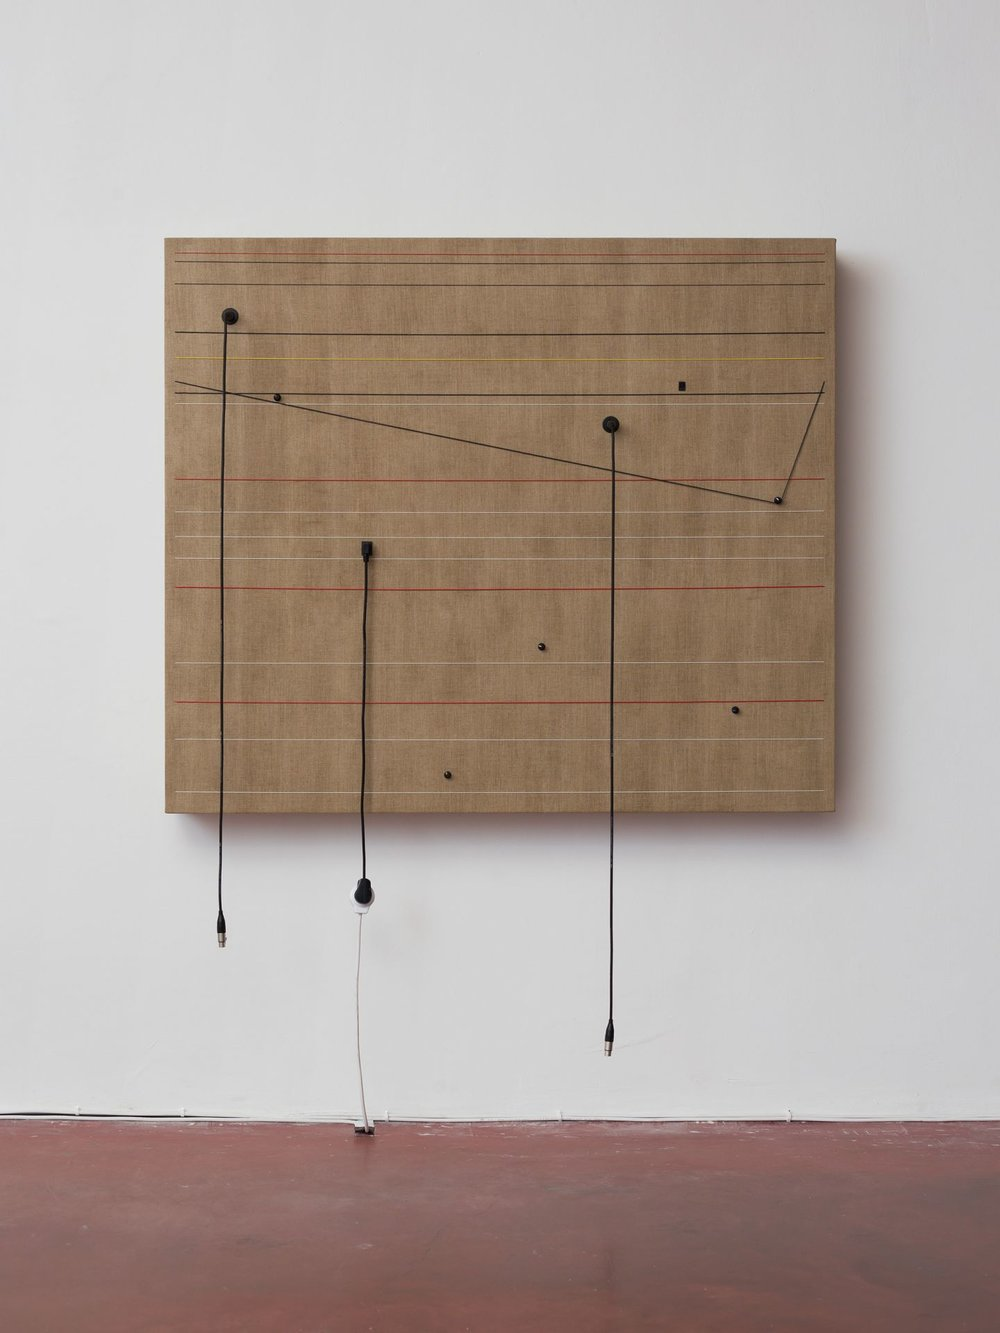 Transitions , 2016, Wood, canvas, electronics, cables, knobs, speakers, 51 3/5 × 60 2/5 × 6 1/2""